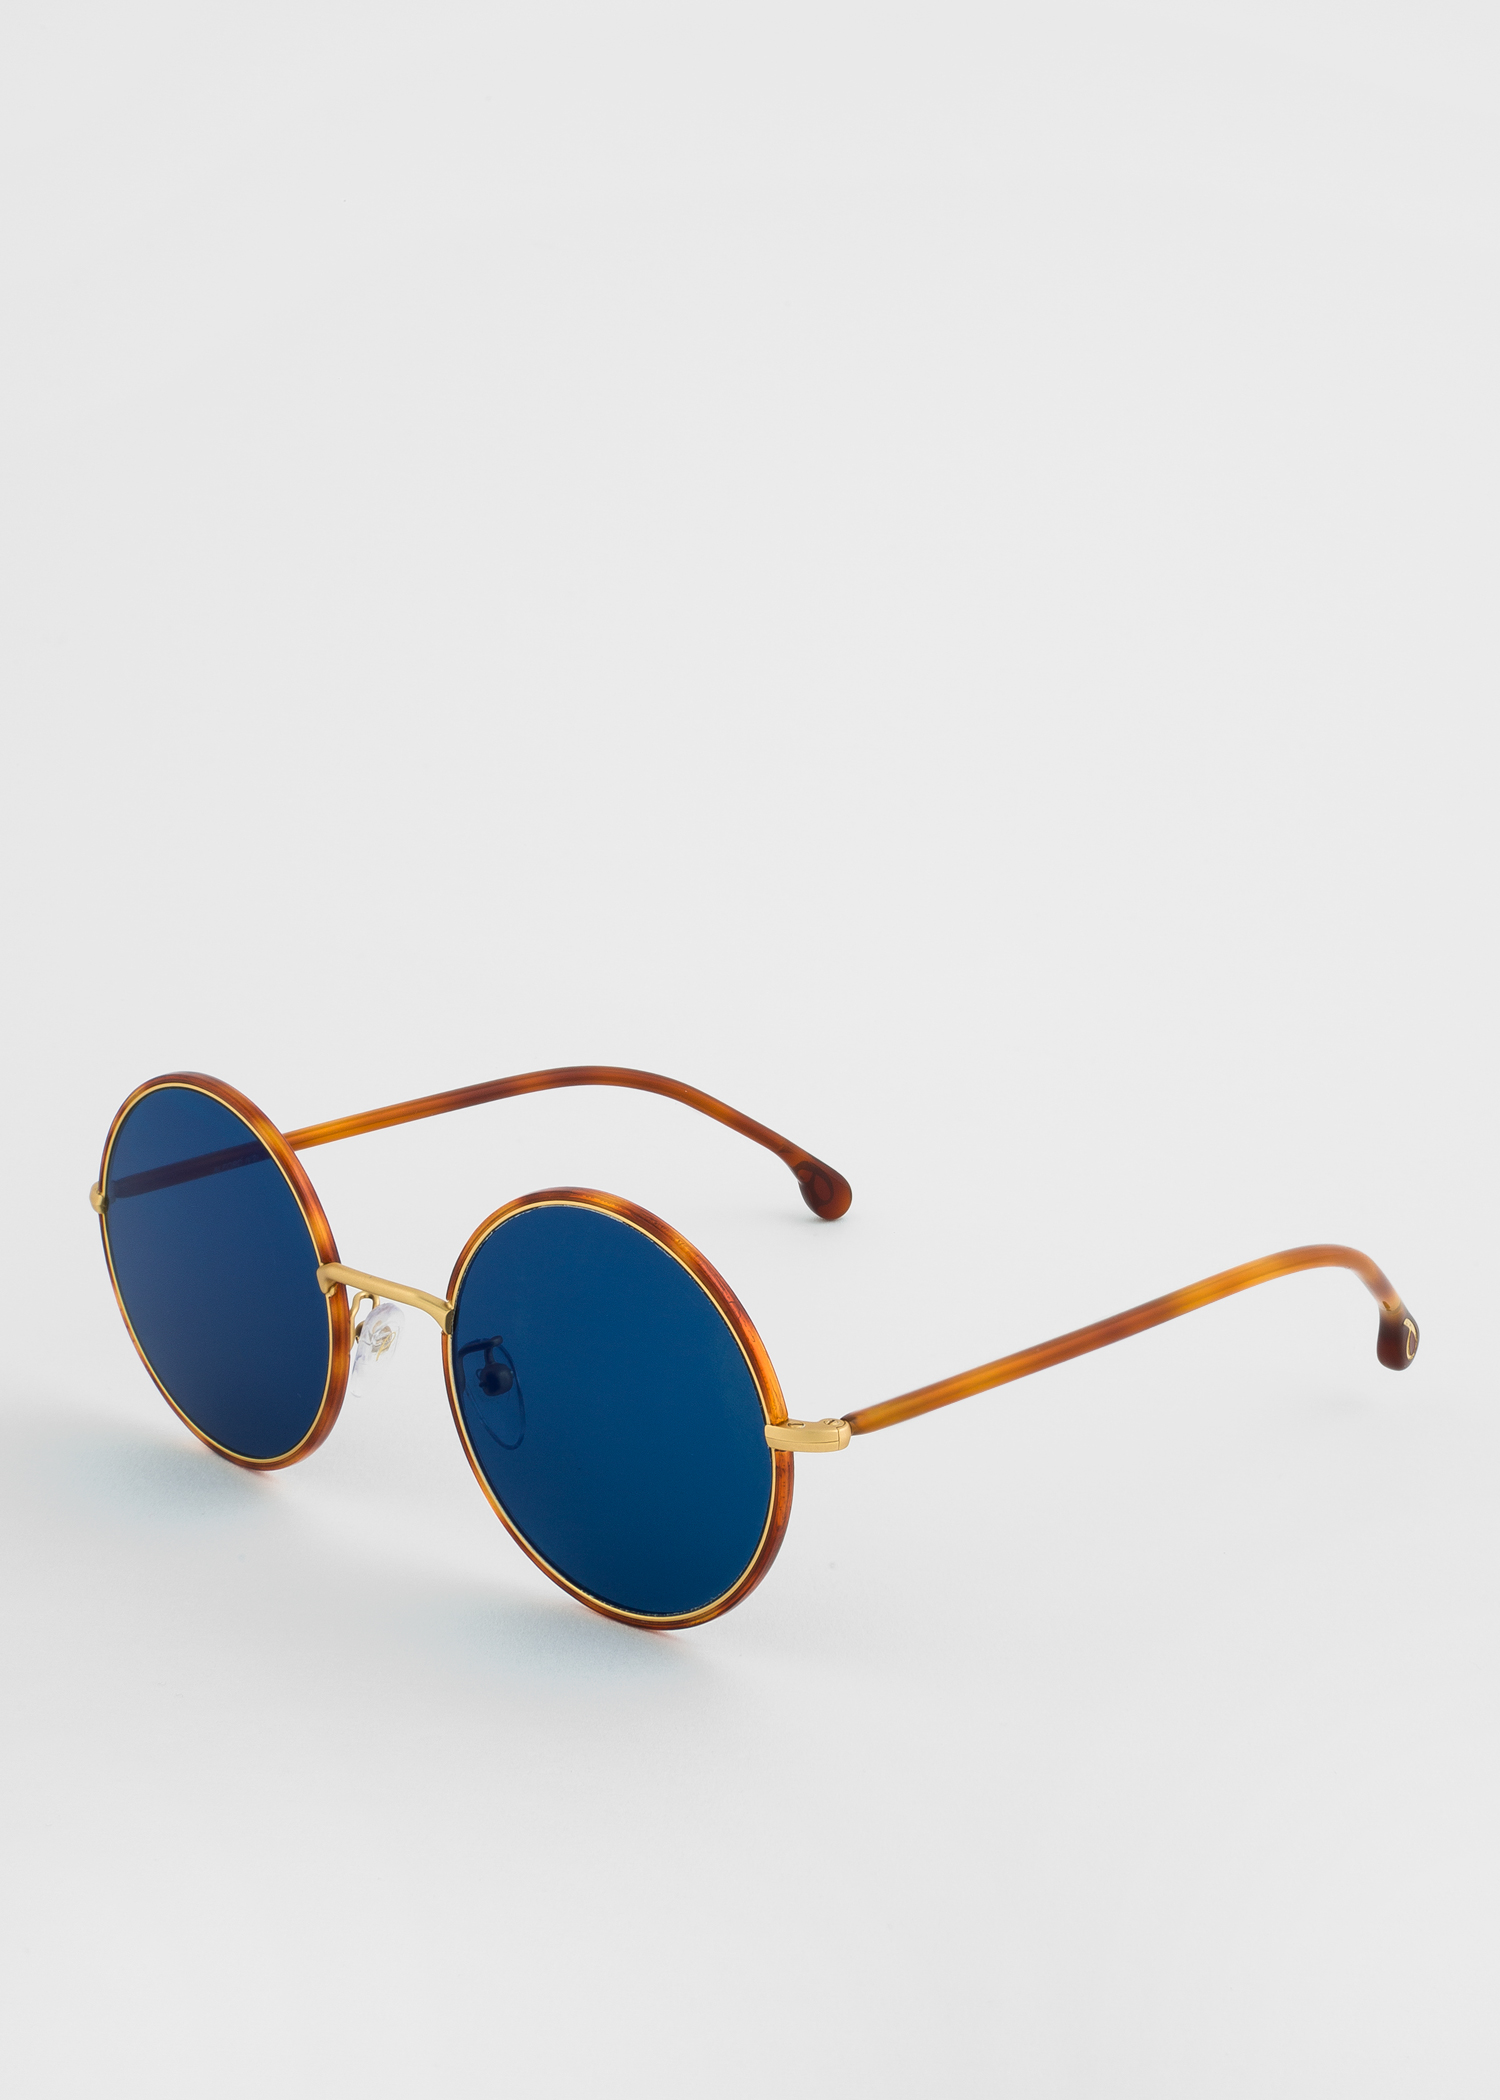 633f832ef0798 Angled view - Paul Smith Honey Turtle And Matte Gold  Alford  Sunglasses